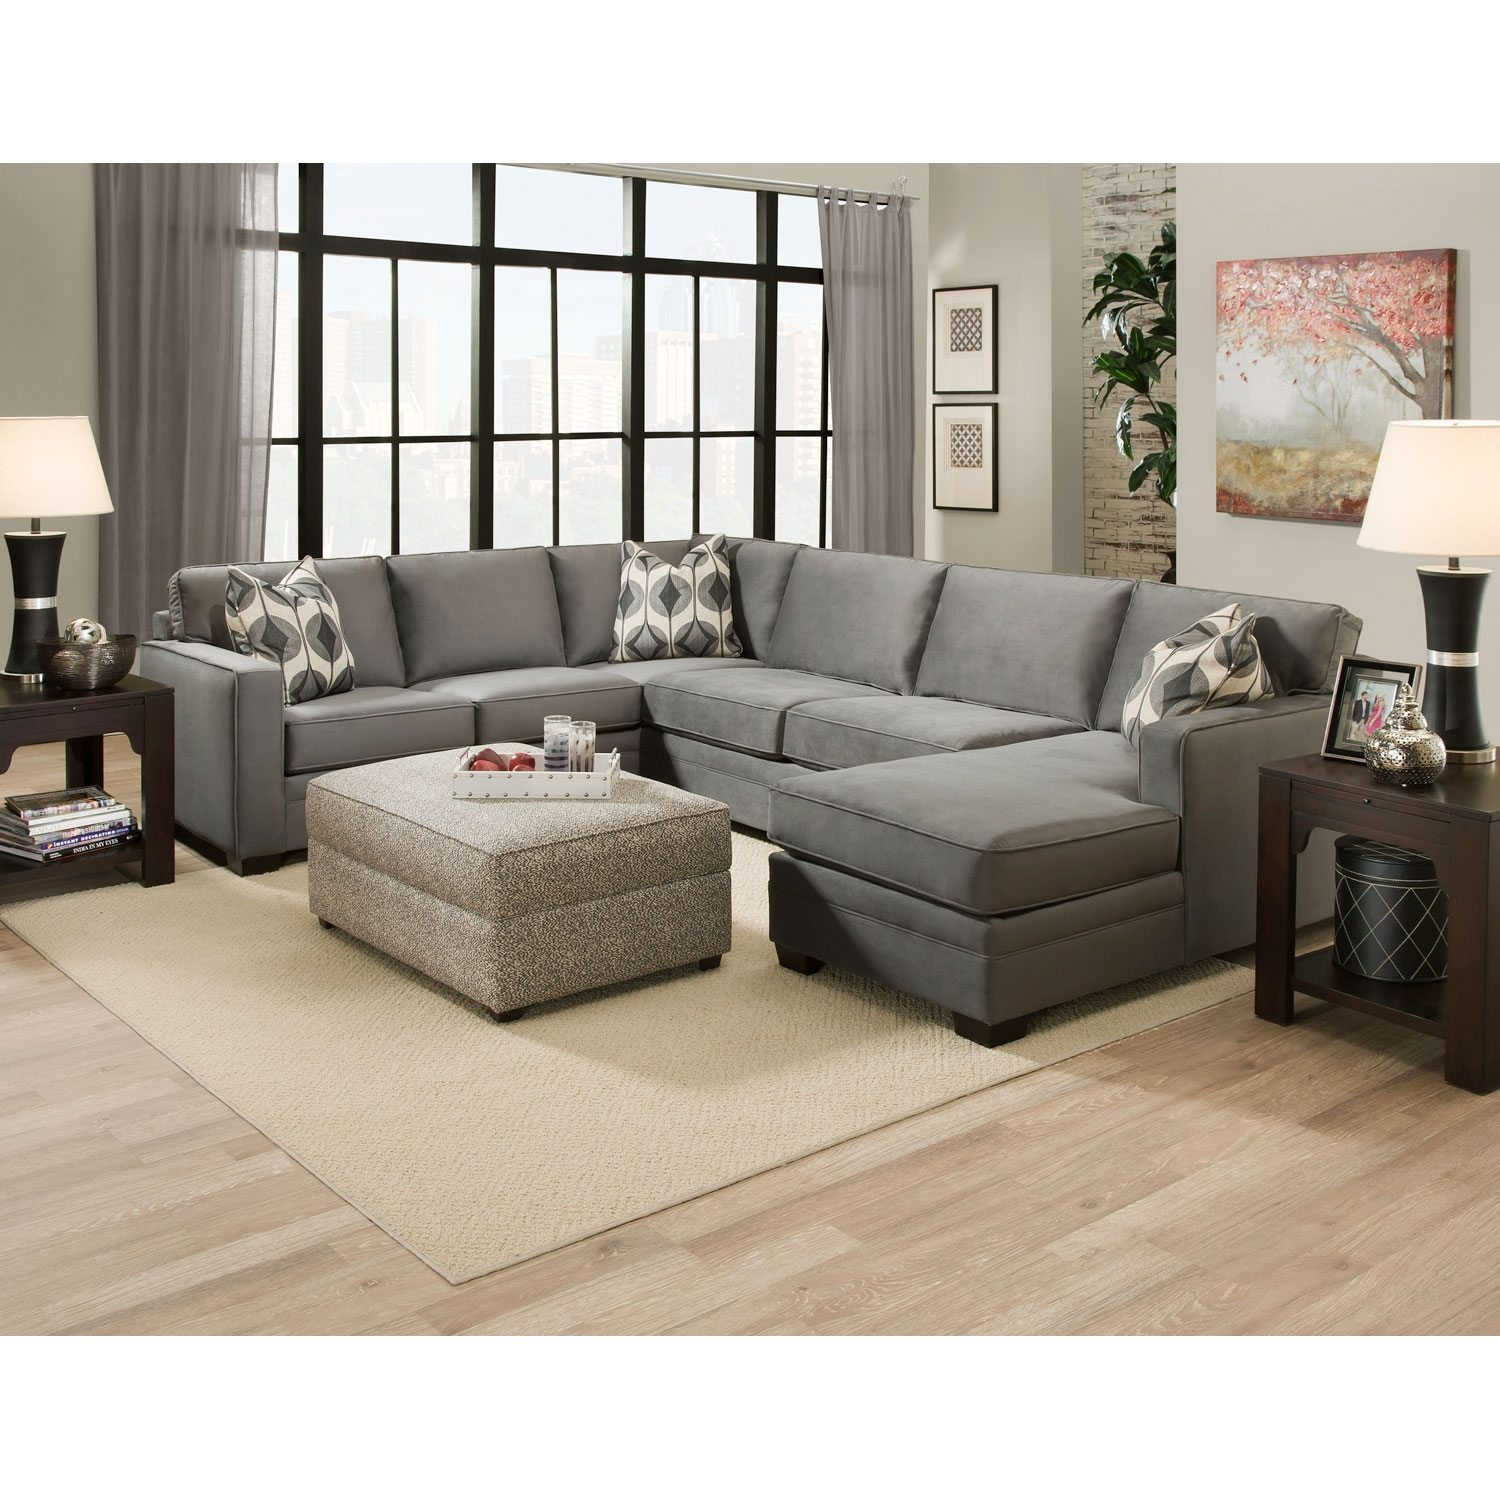 cheap living room sets with sleeper sofa. decorating using cheap